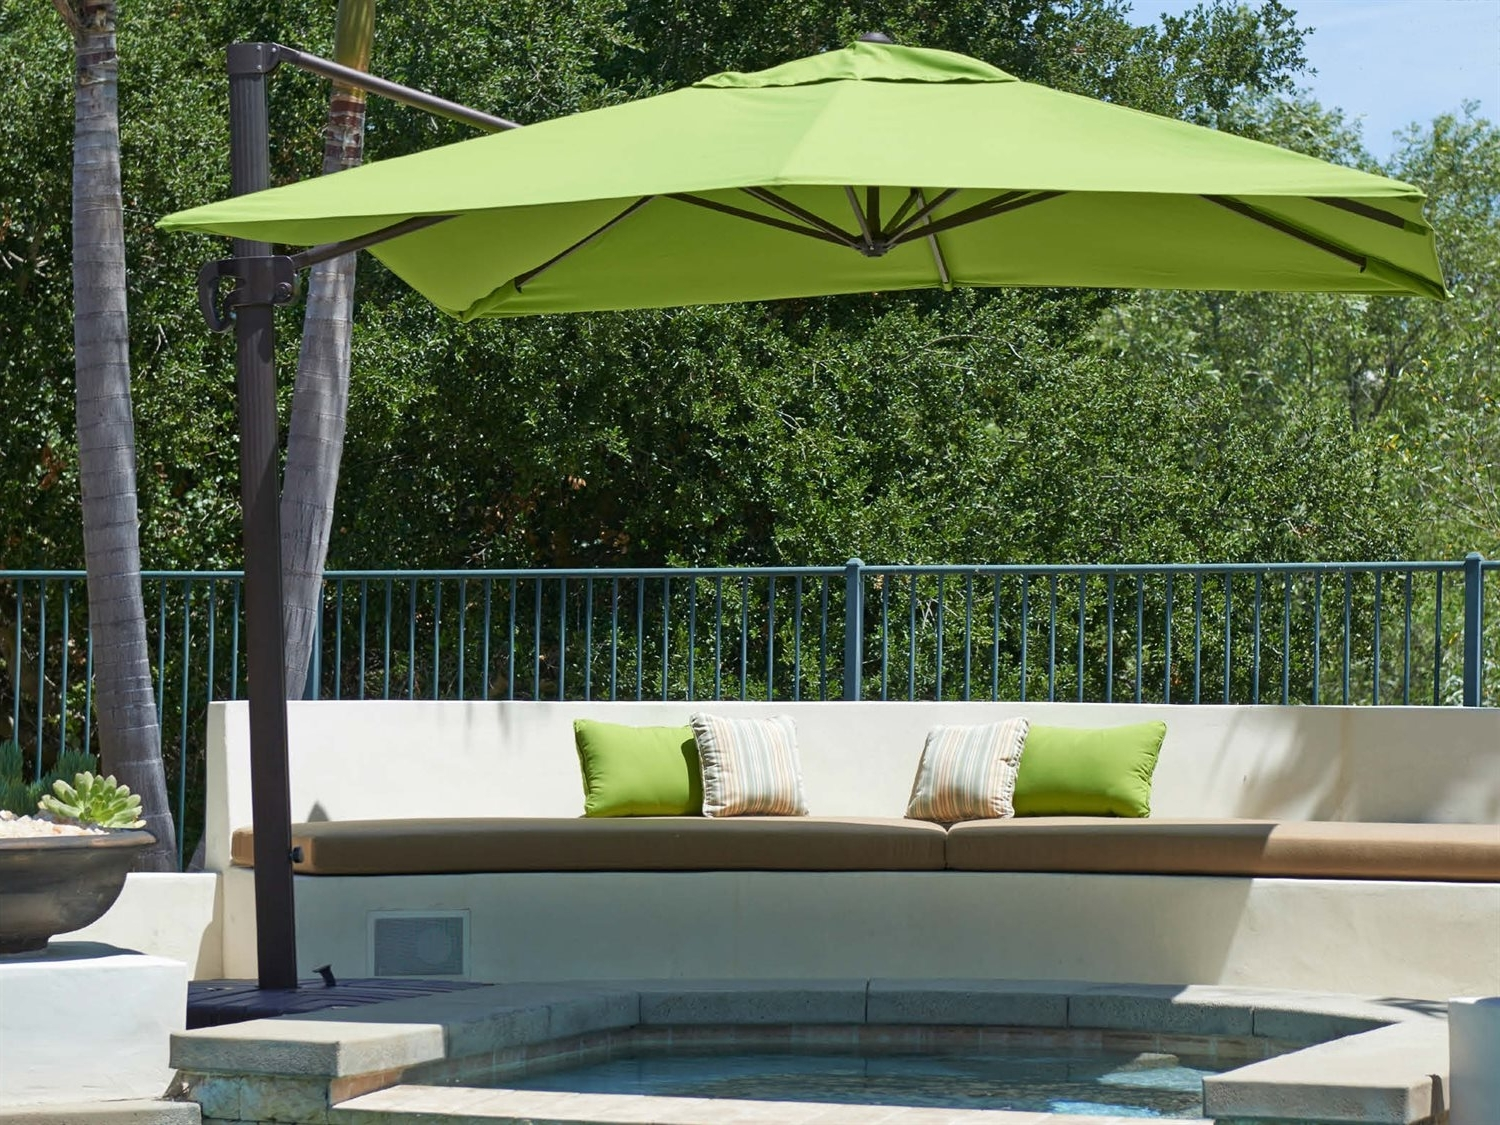 Most Popular Garden: Enchanting Outdoor Patio Decor Ideas With Patio Umbrellas With Regard To Rectangle Patio Umbrellas (View 6 of 20)